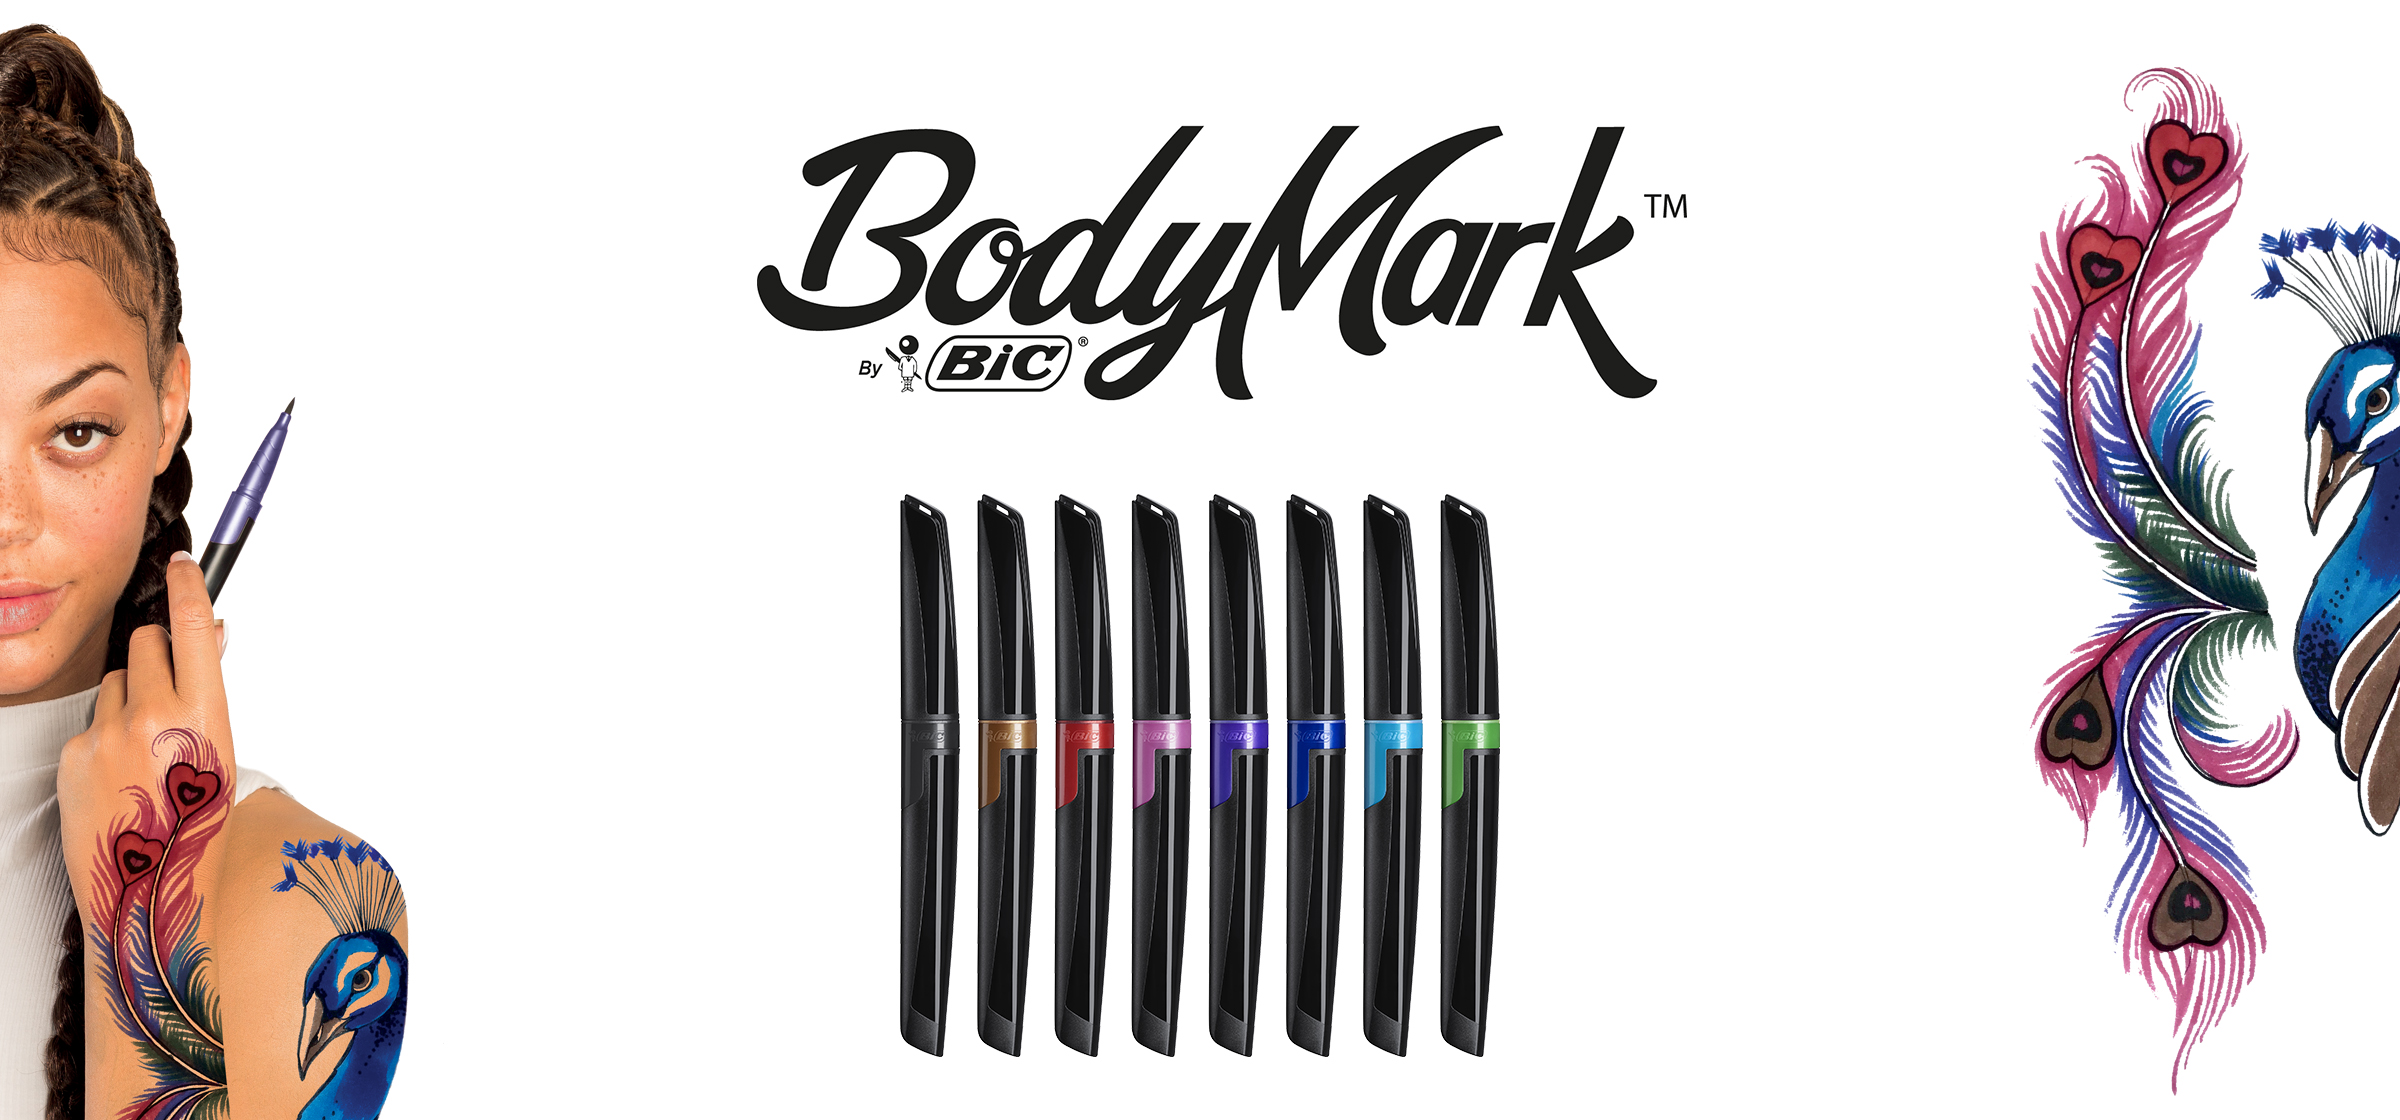 girl with tattoos and BIC BodyMark markers